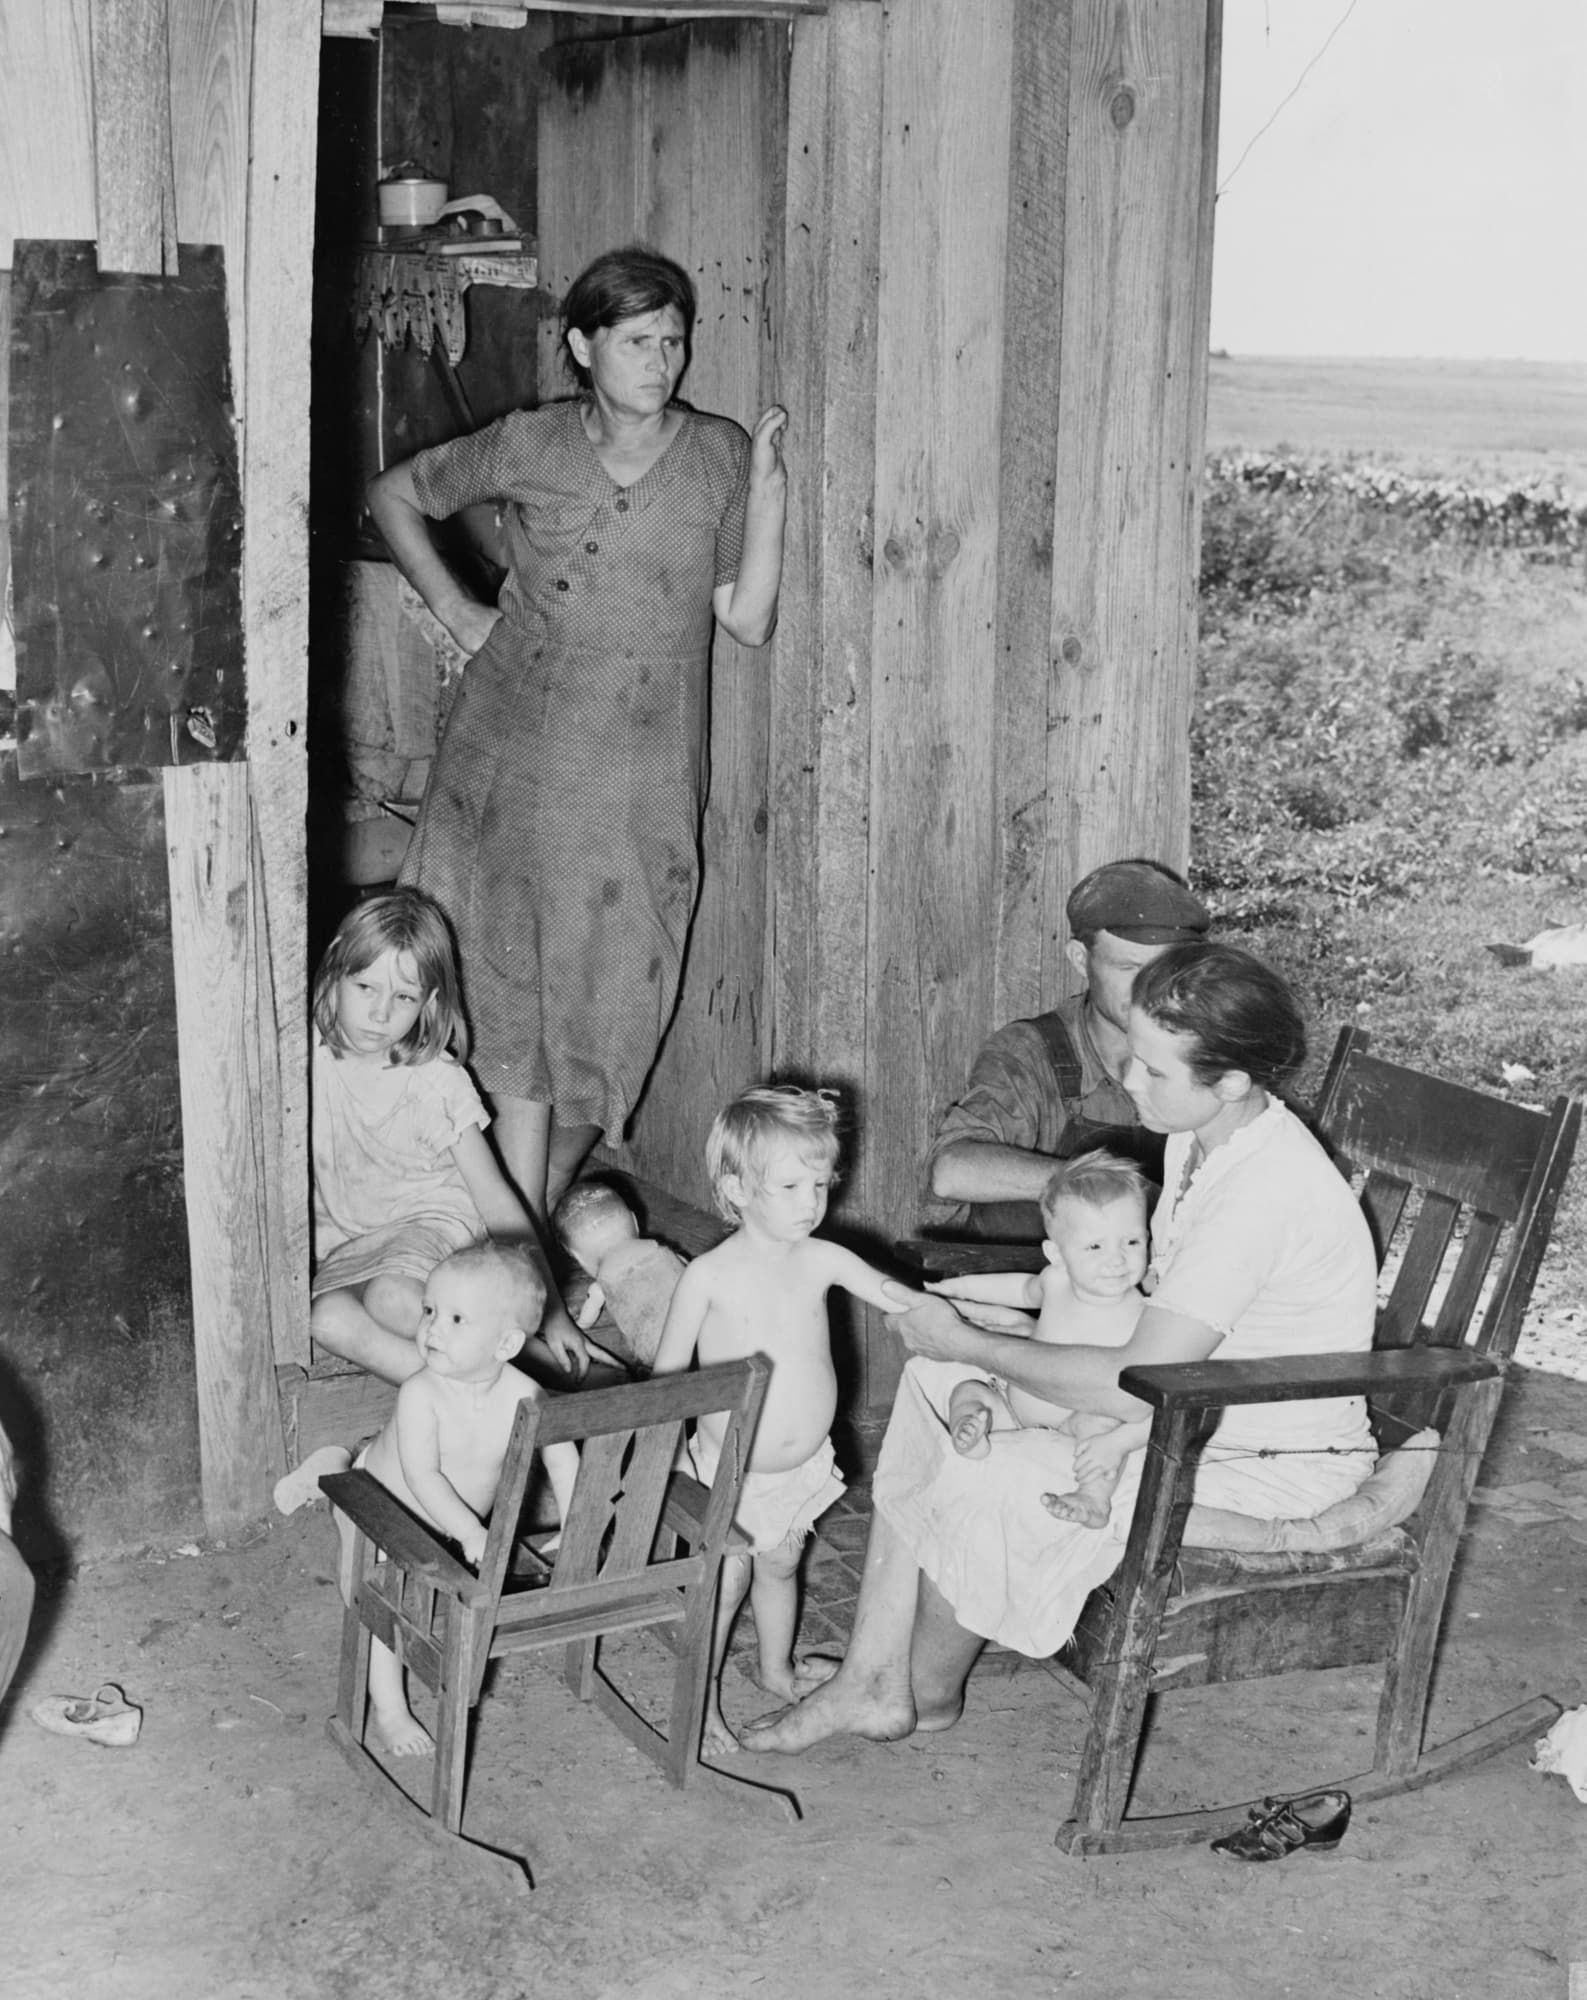 Day Labors At Shack Dust bowl, Photo, Historical photos